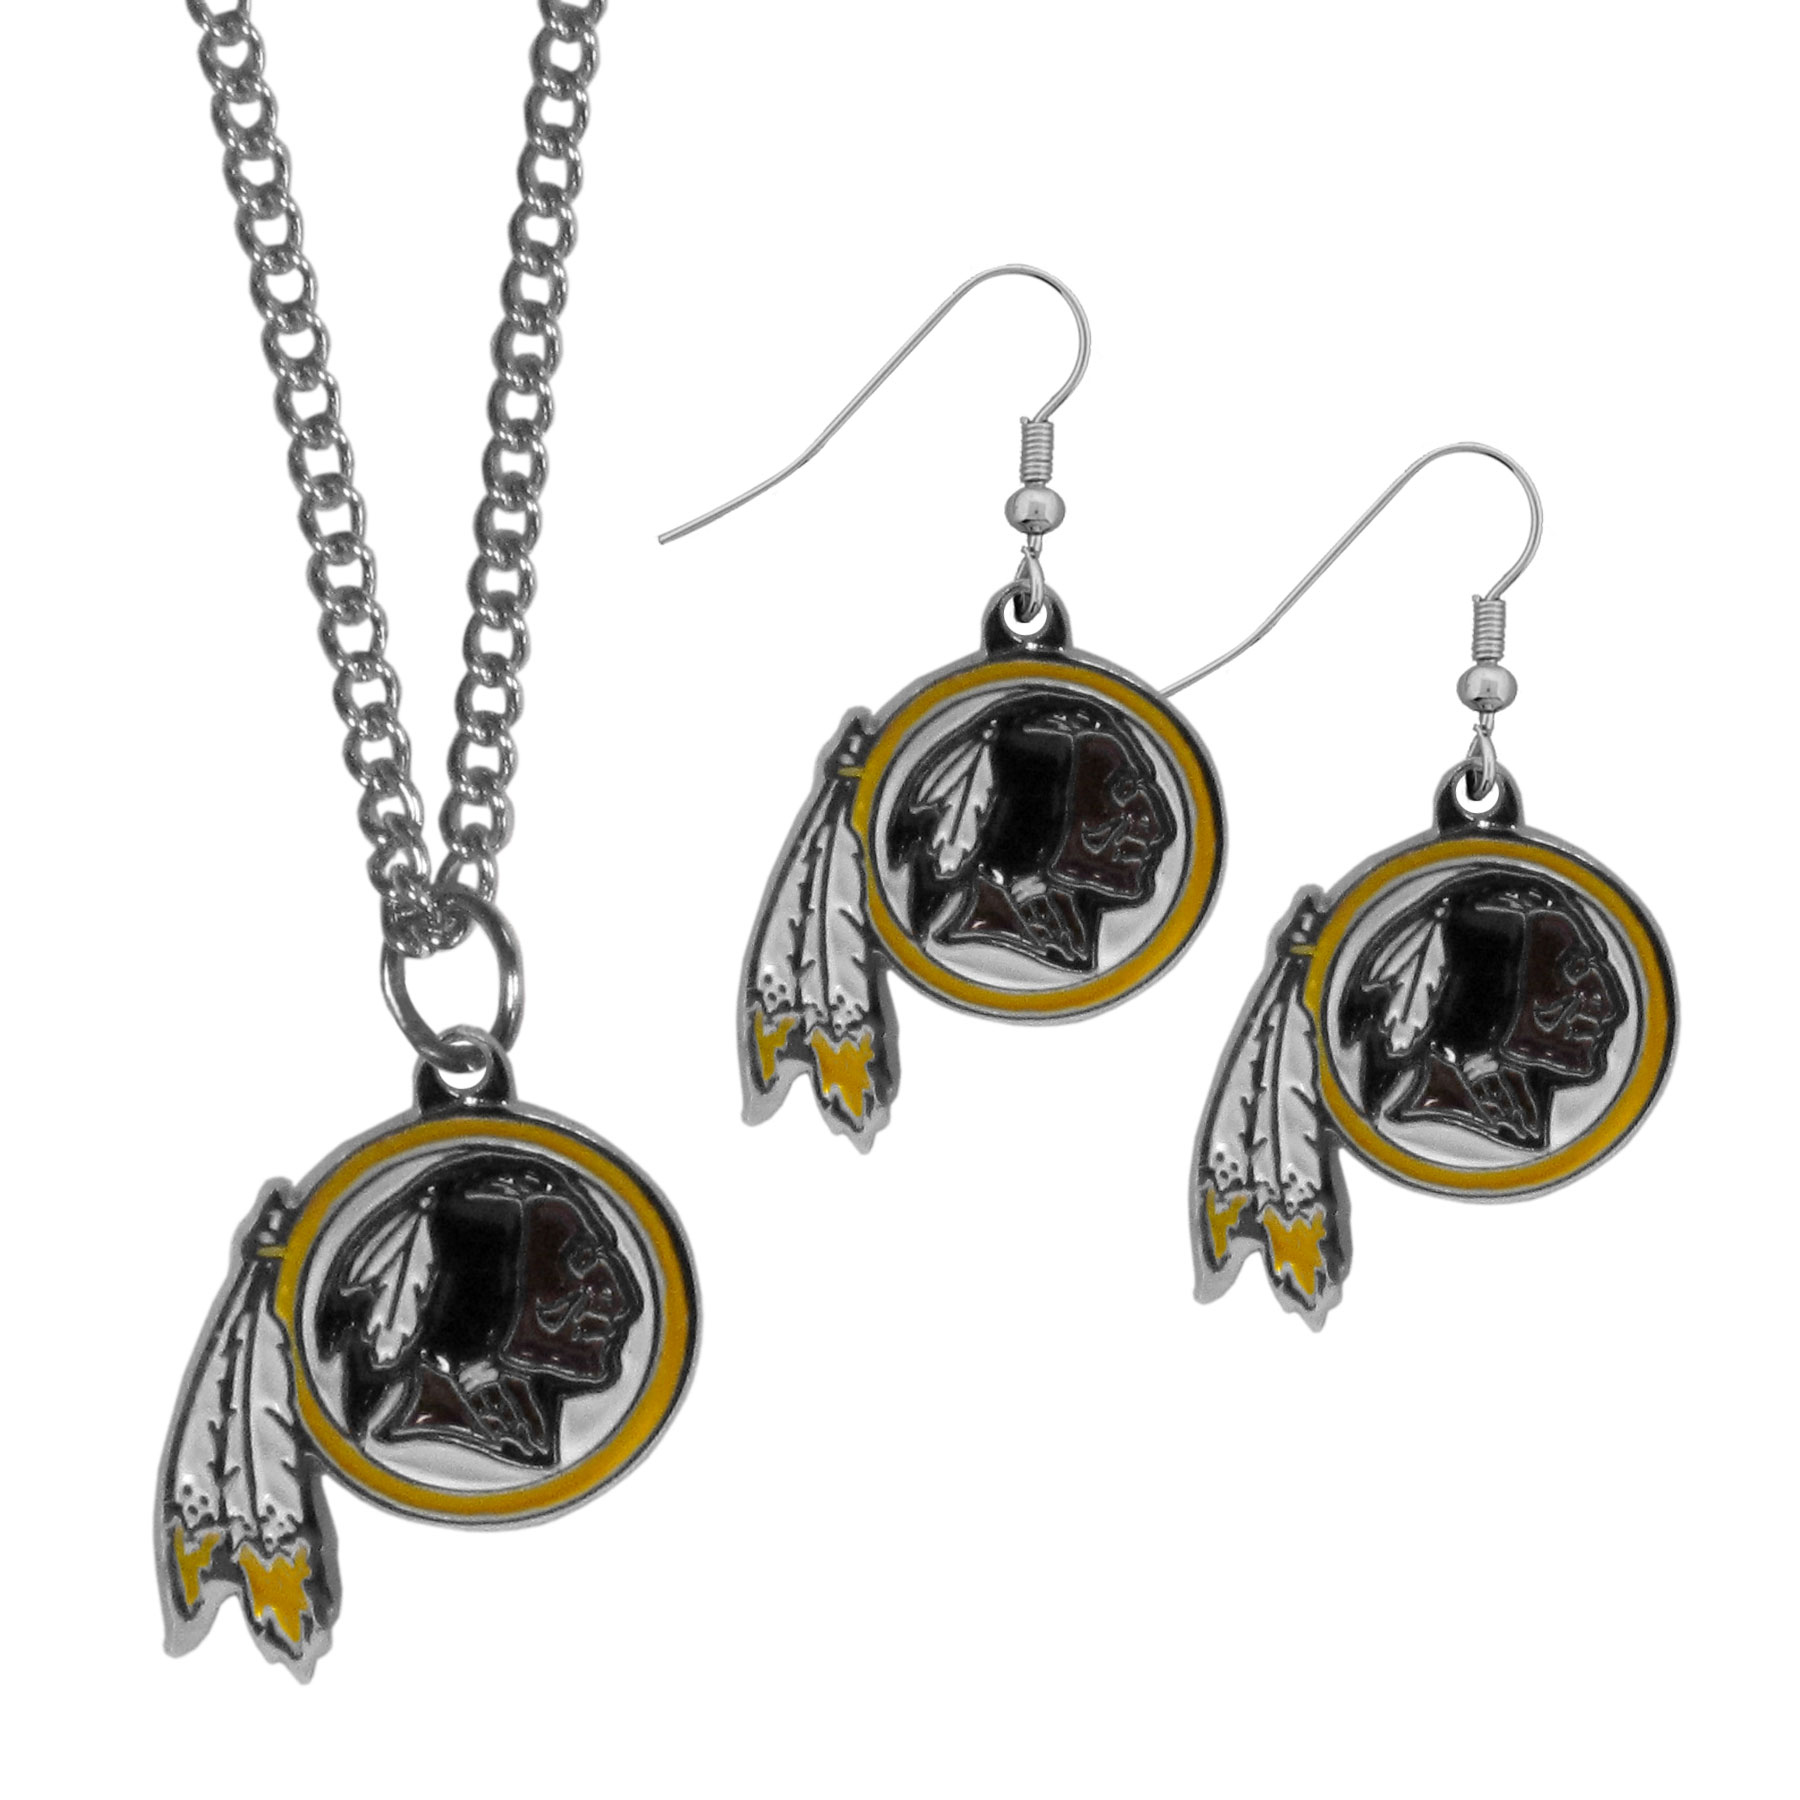 Washington Redskins Dangle Earrings and Chain Necklace Set - This classic jewelry set contains are most popular Washington Redskins dangle earrings and 22 inch chain necklace. The trendy, dangle earrings are lightweight and feature a fully cast metal team charm with enameled team colors. The matching necklace completes this fashion forward combo and is a spirited set that is perfect for game day but nice enough for everyday.